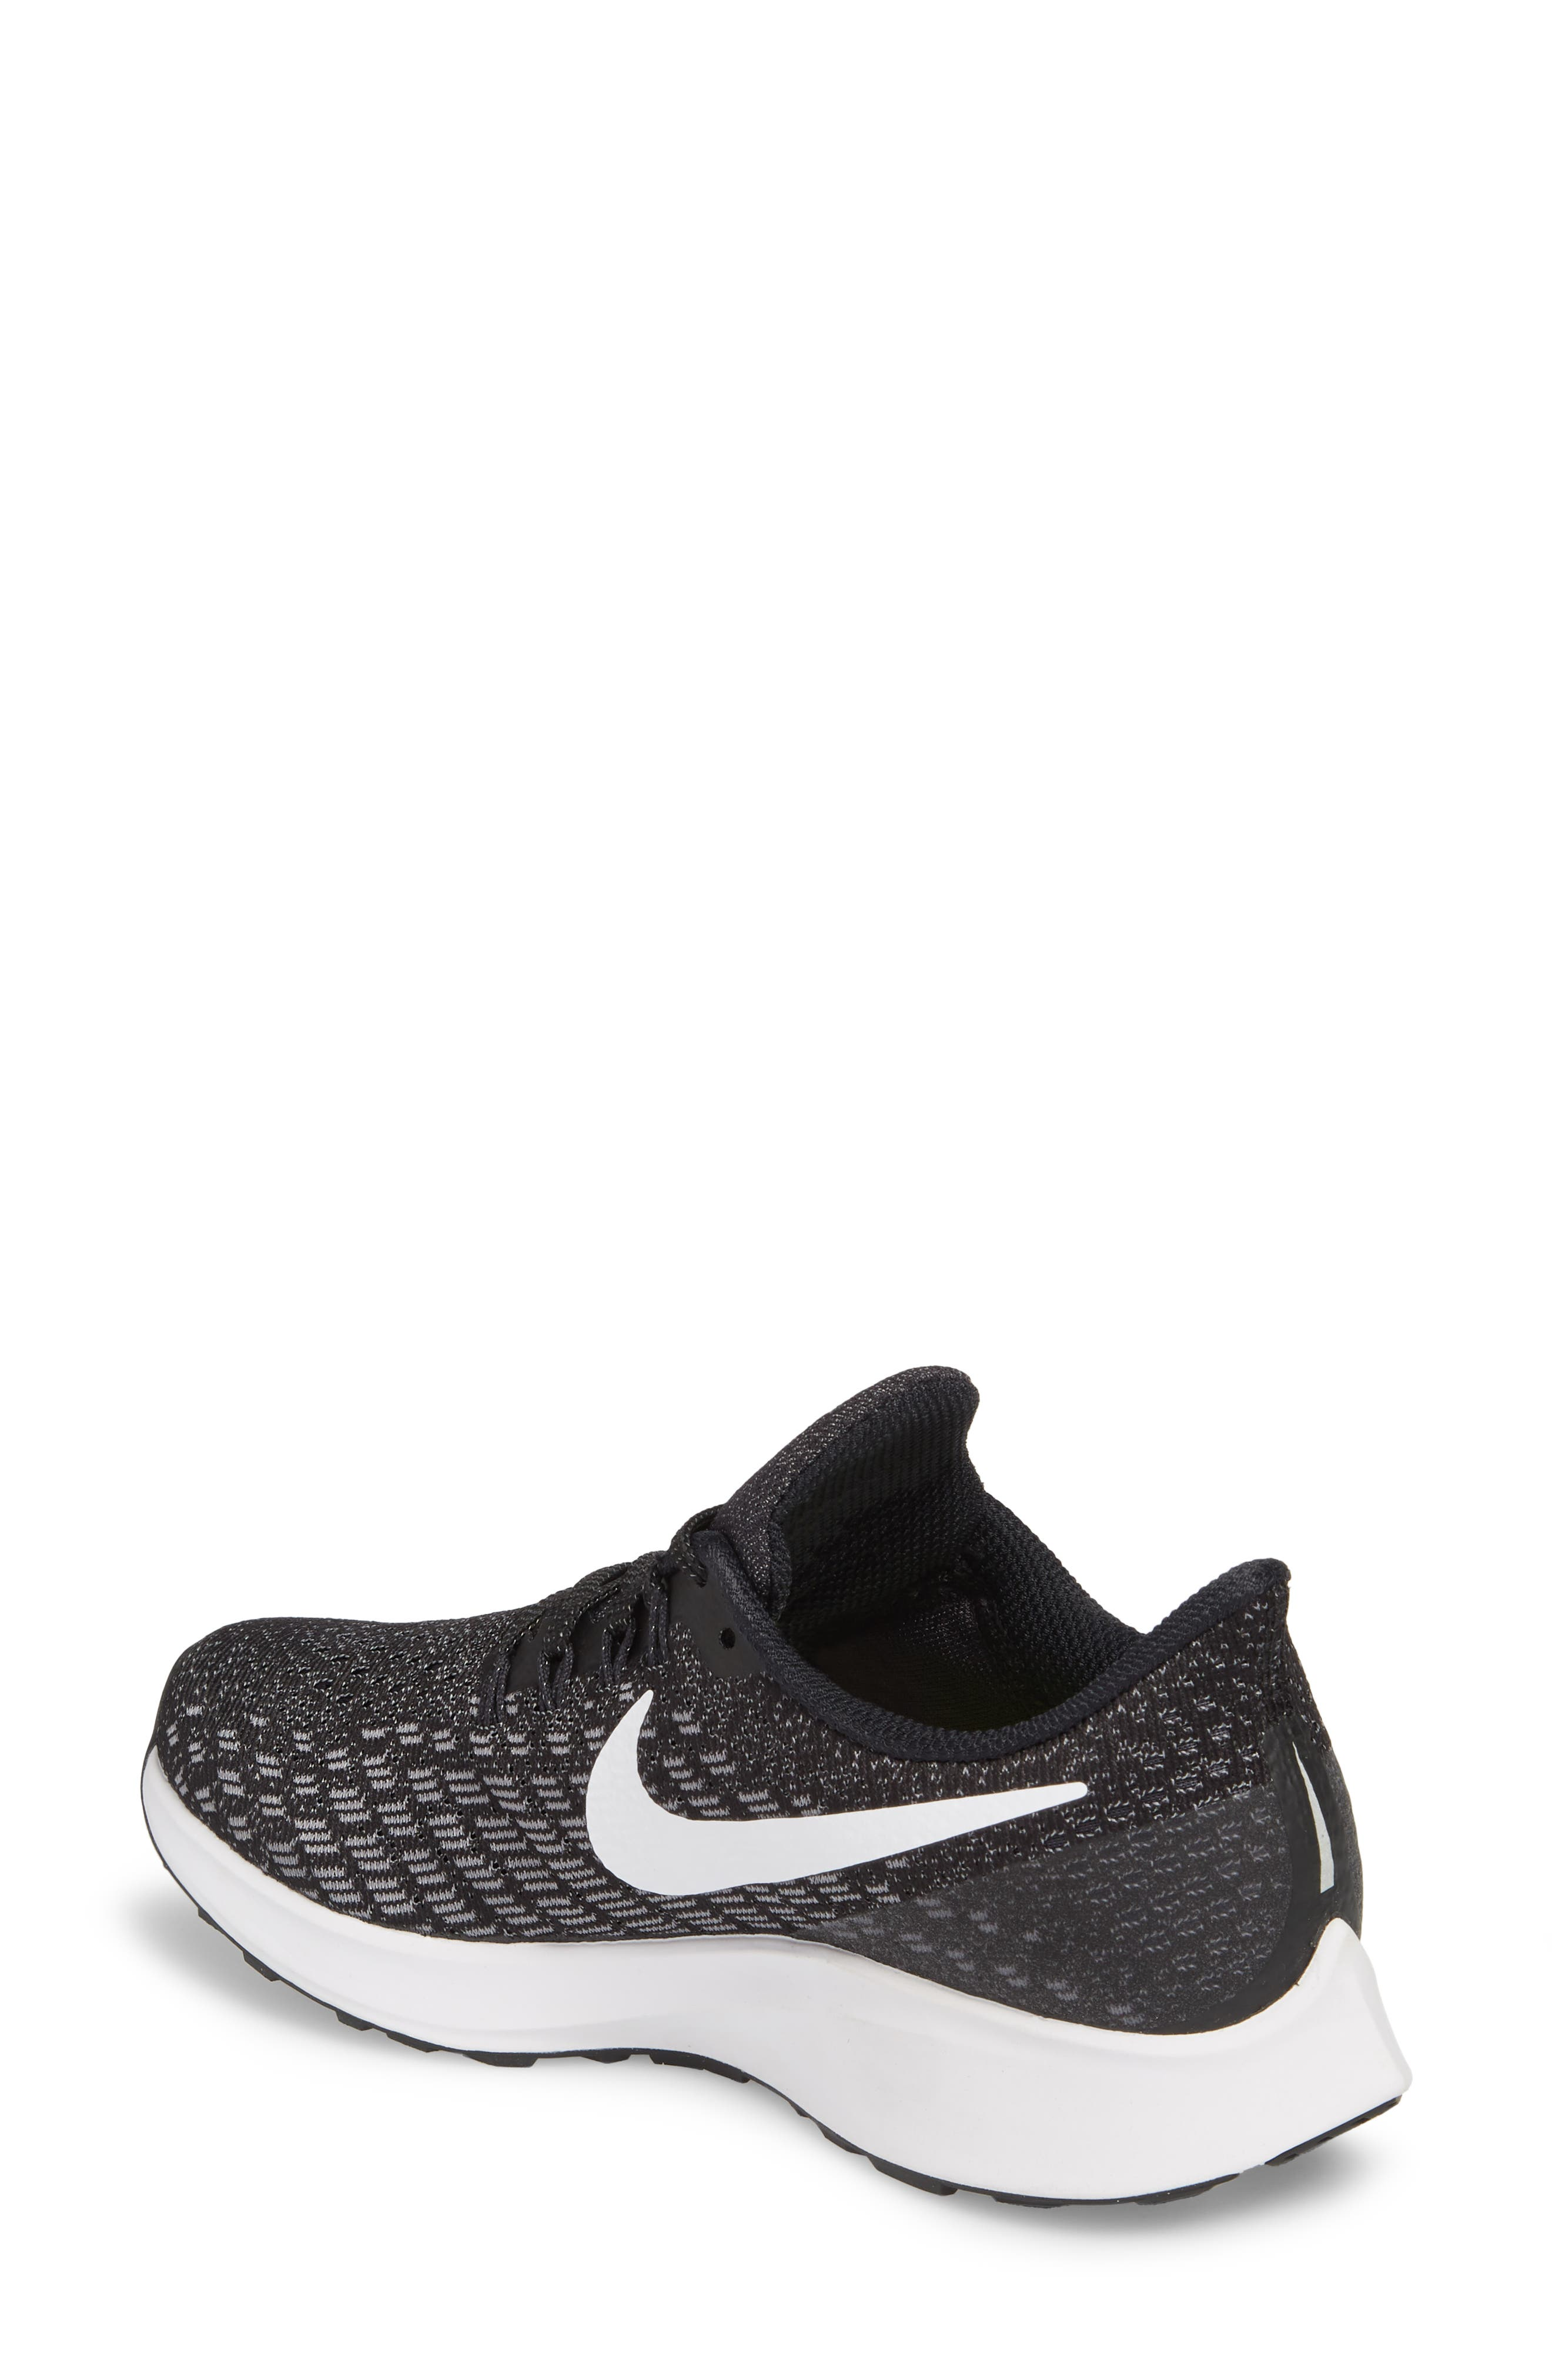 official photos cf177 a5016 Women s Sneakers   Athletic  Sale   Nordstrom